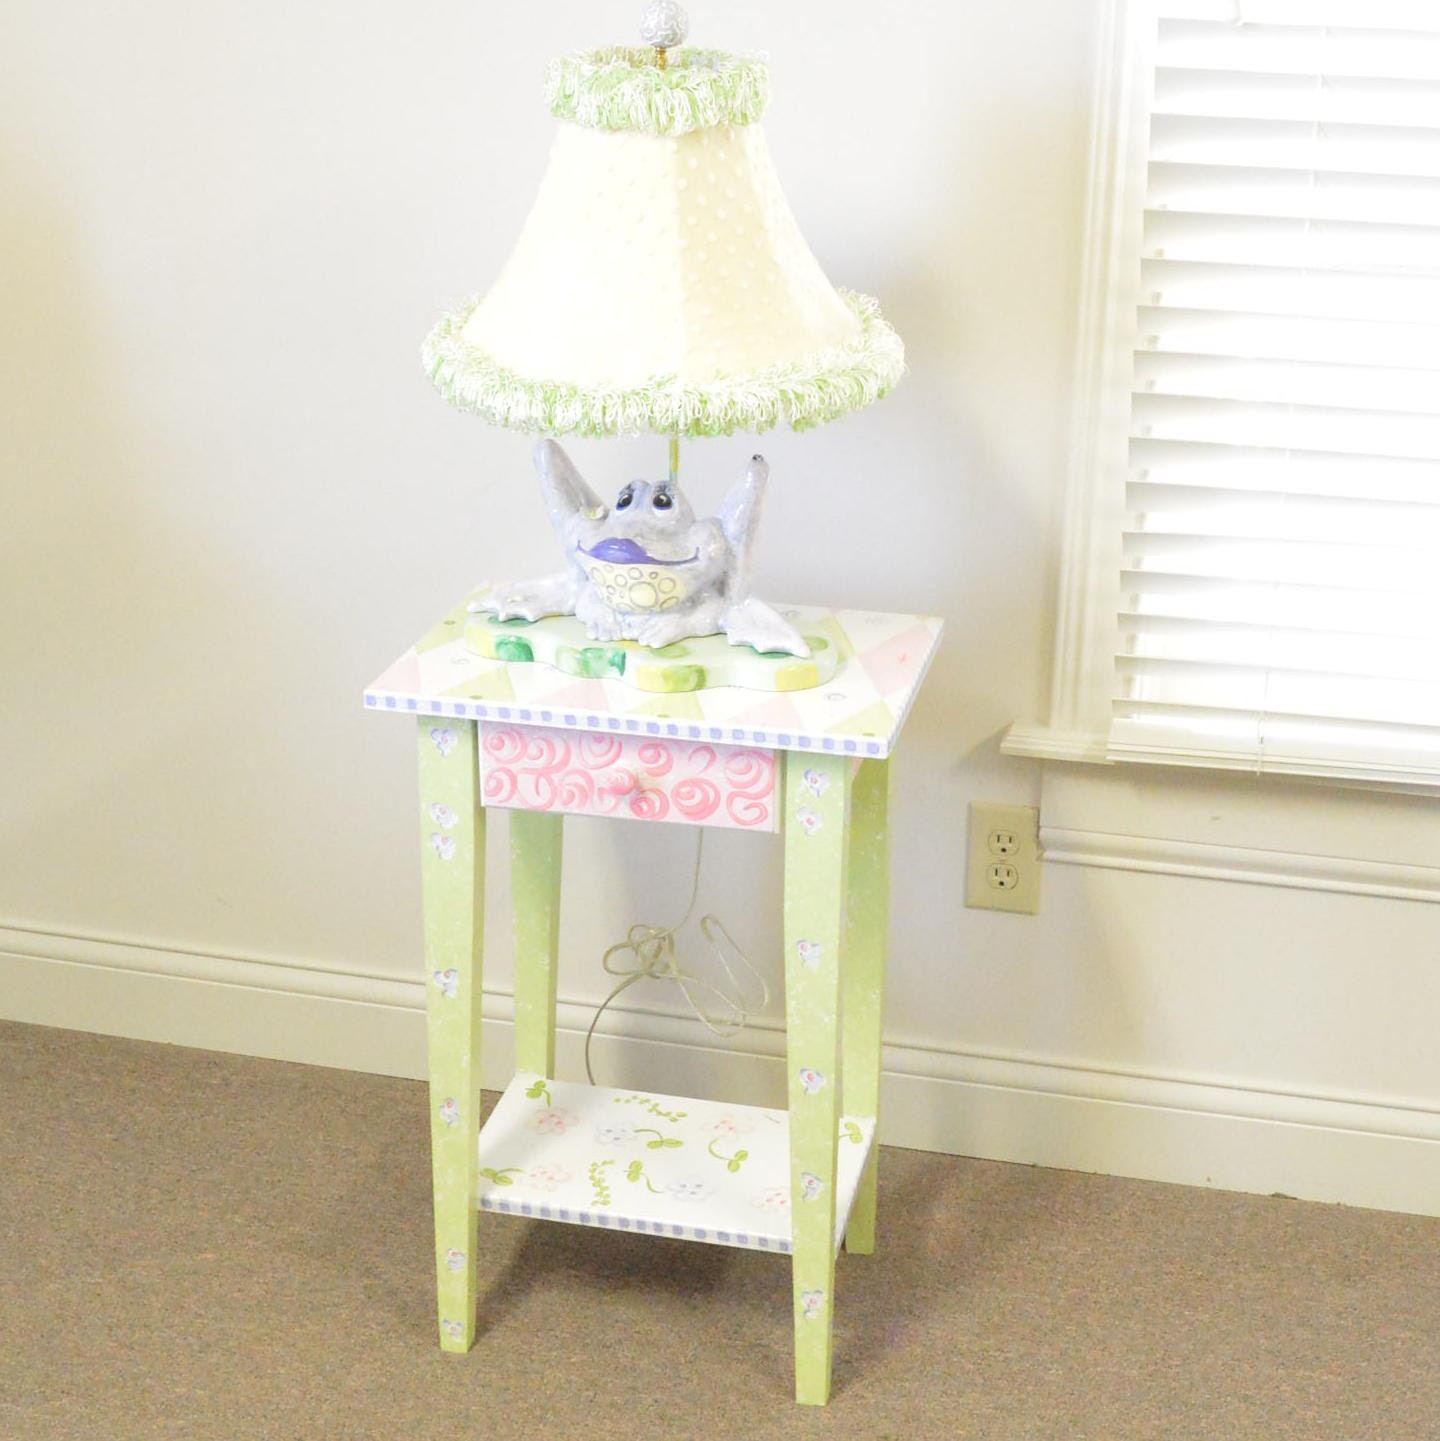 Hand-Painted Whimsical Accent Table with Ceramic Frog Lamp